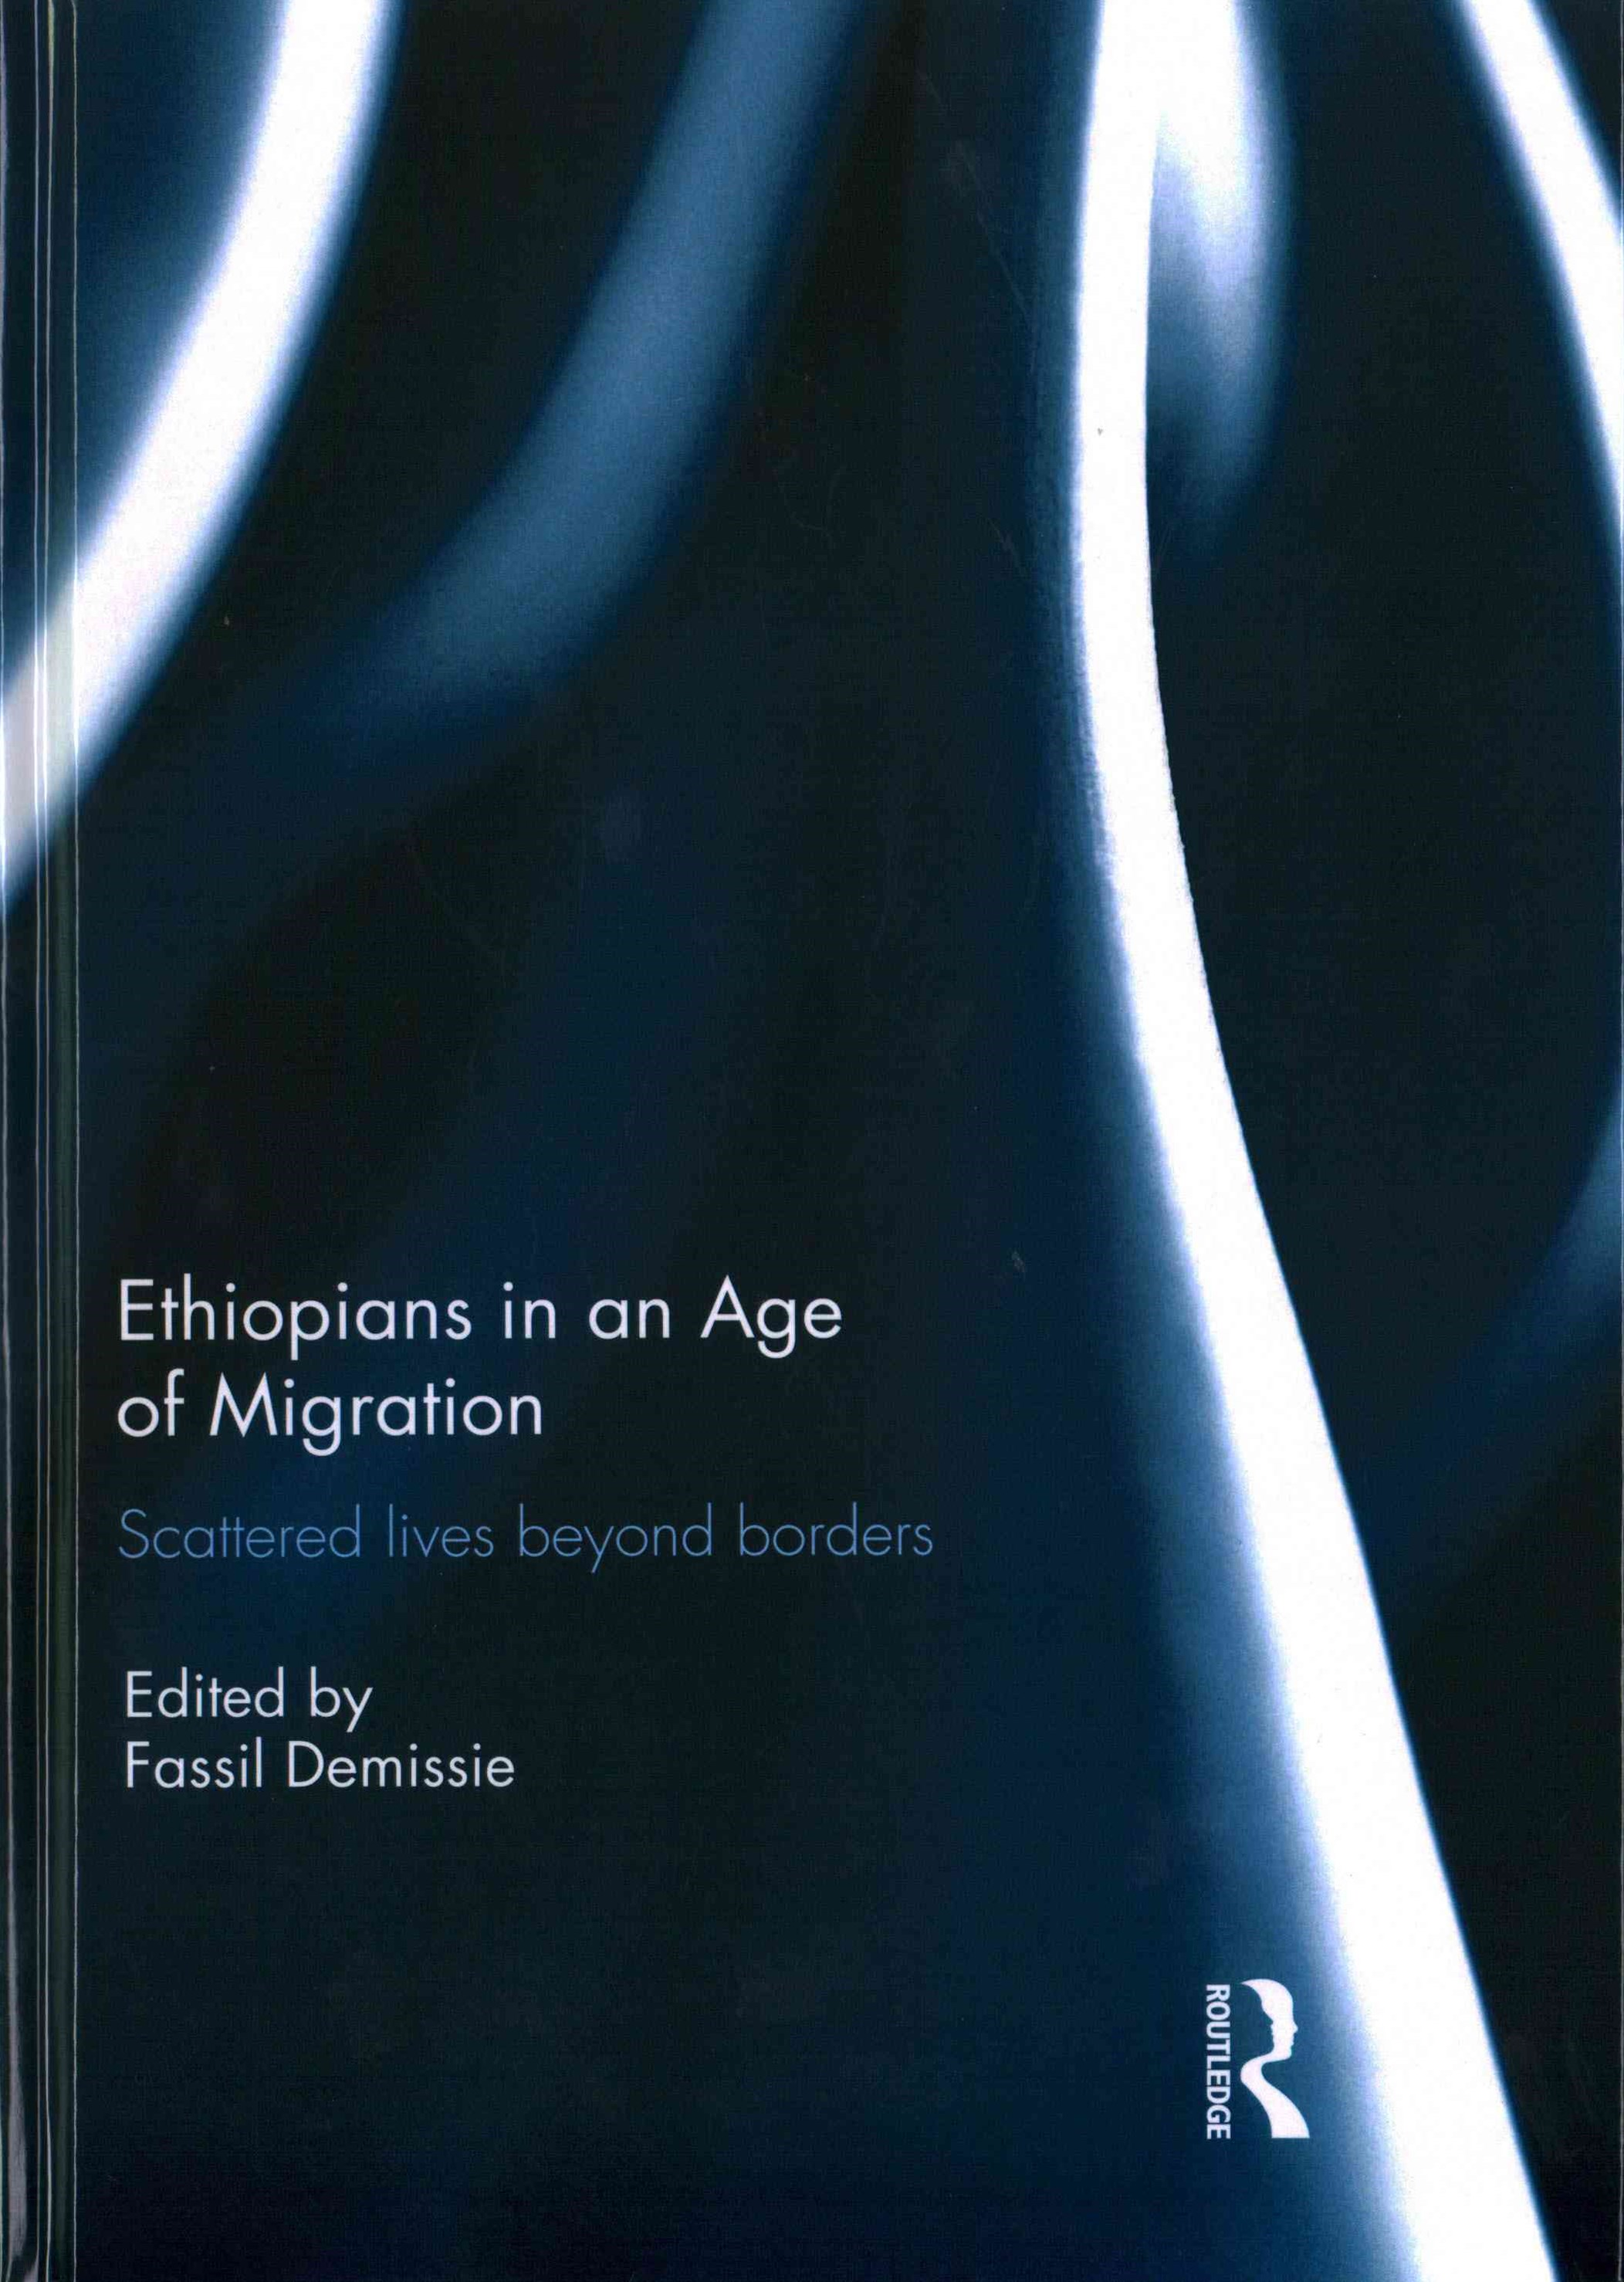 Ethiopians in an Age of Migration